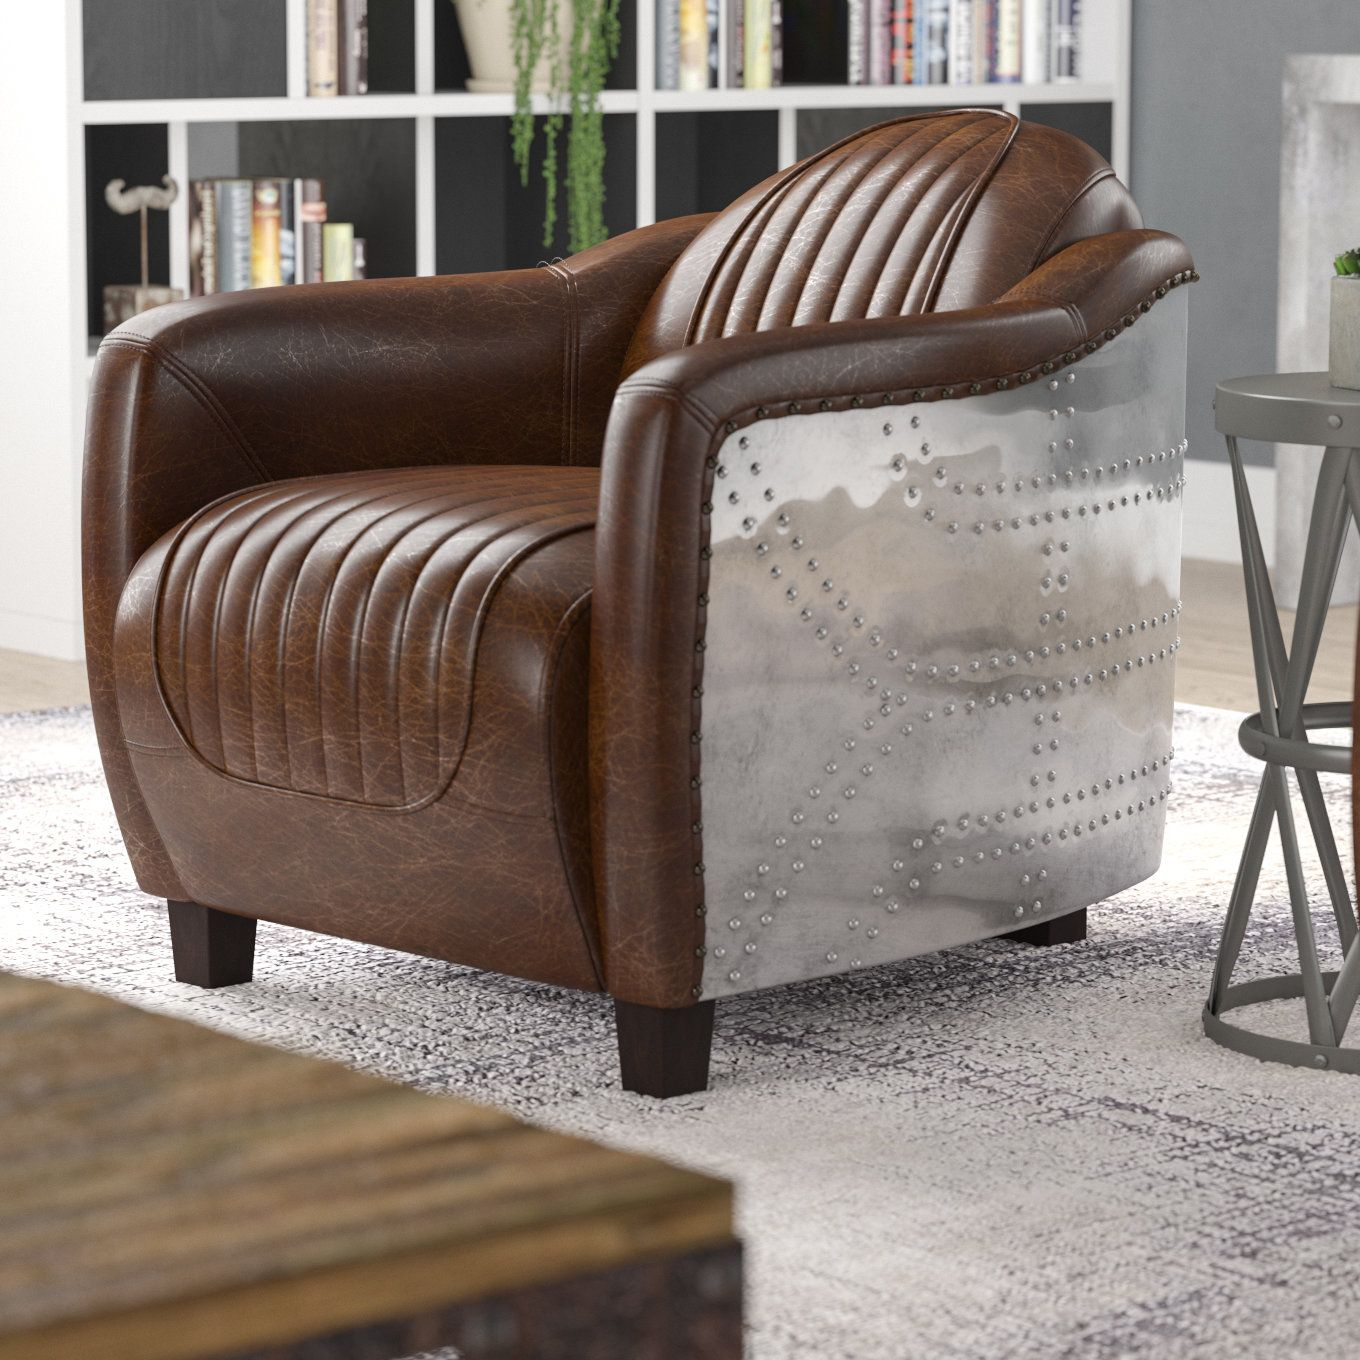 Foundstone Analise Barrel Chair Wayfair Barrel Chair Brown Leather Chairs Chair